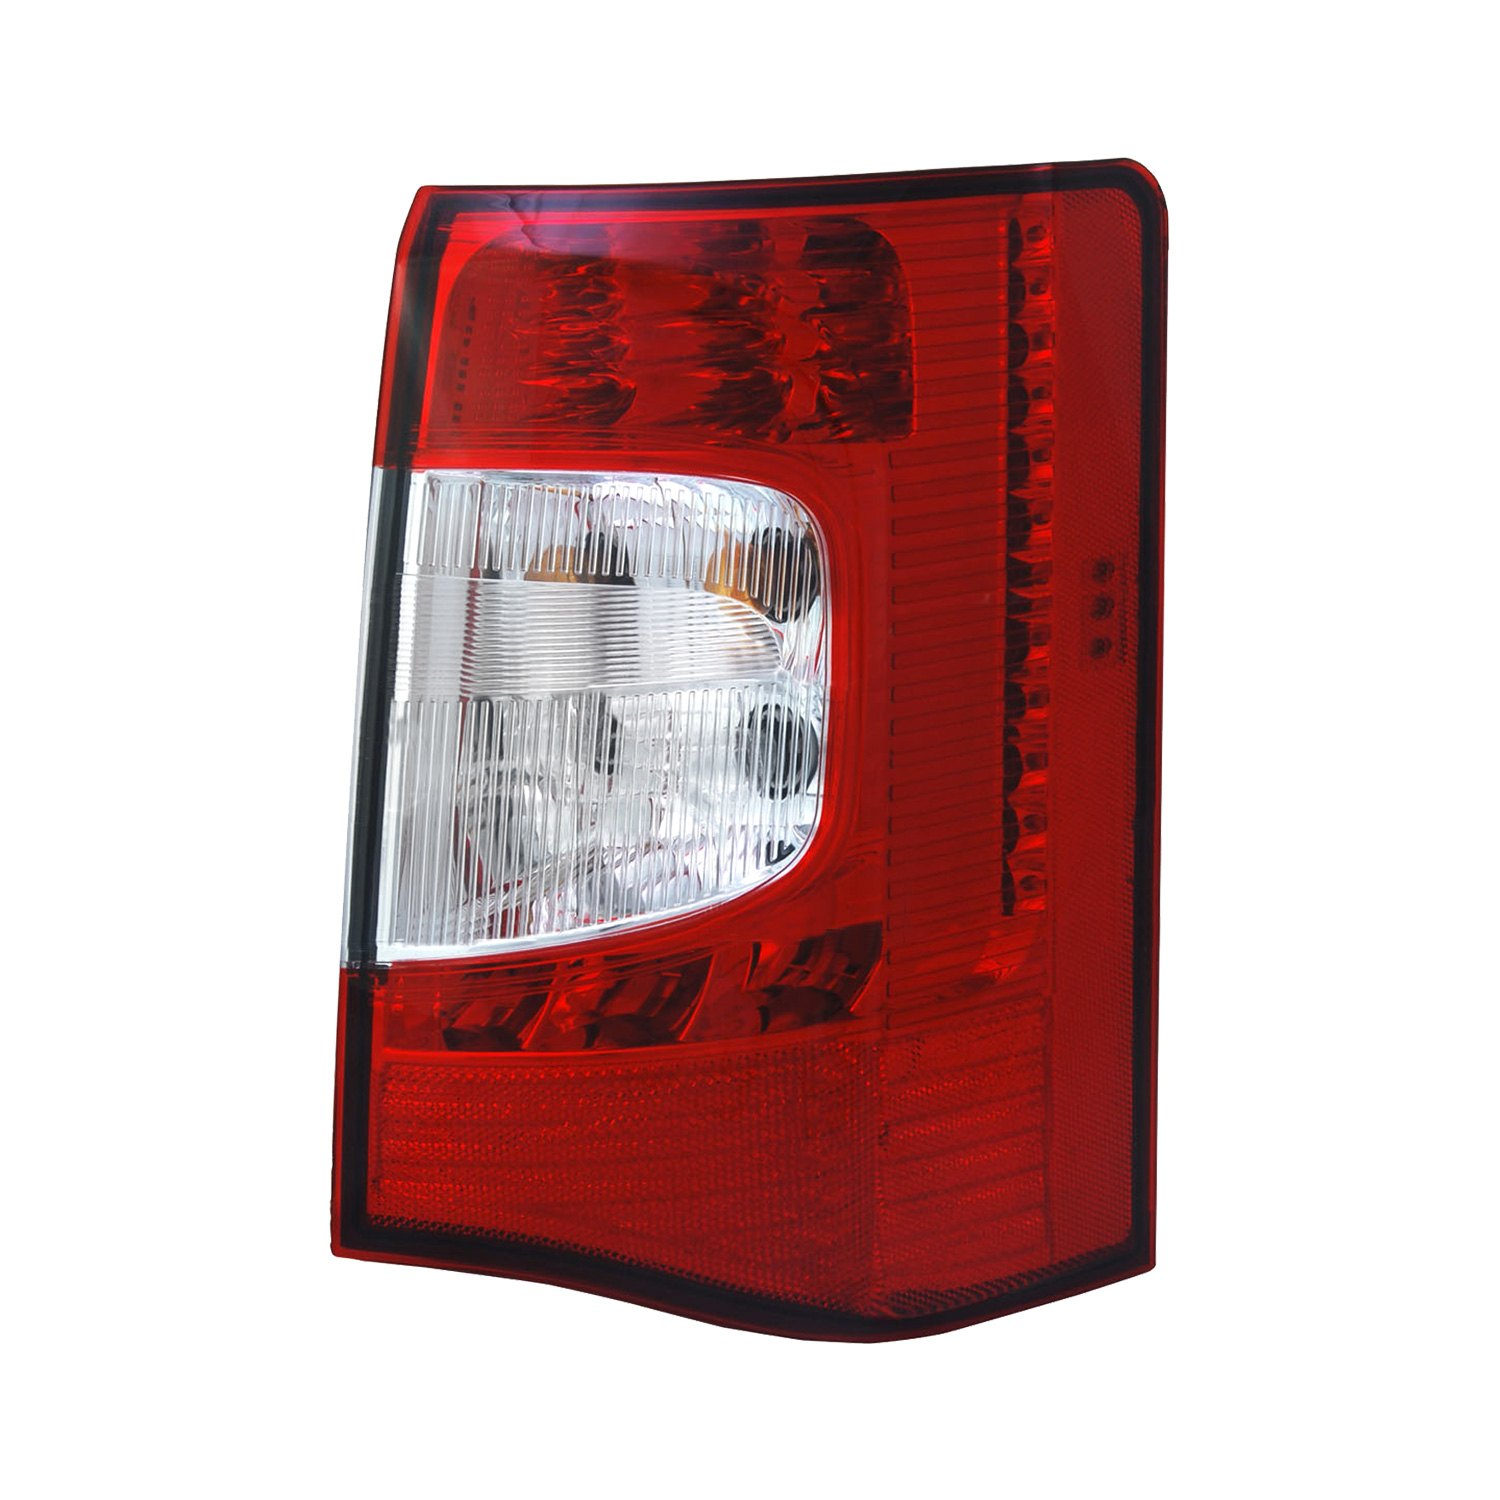 TYC 11 6435 00 1 Passenger Side NSF Certified Replacement Tail Light